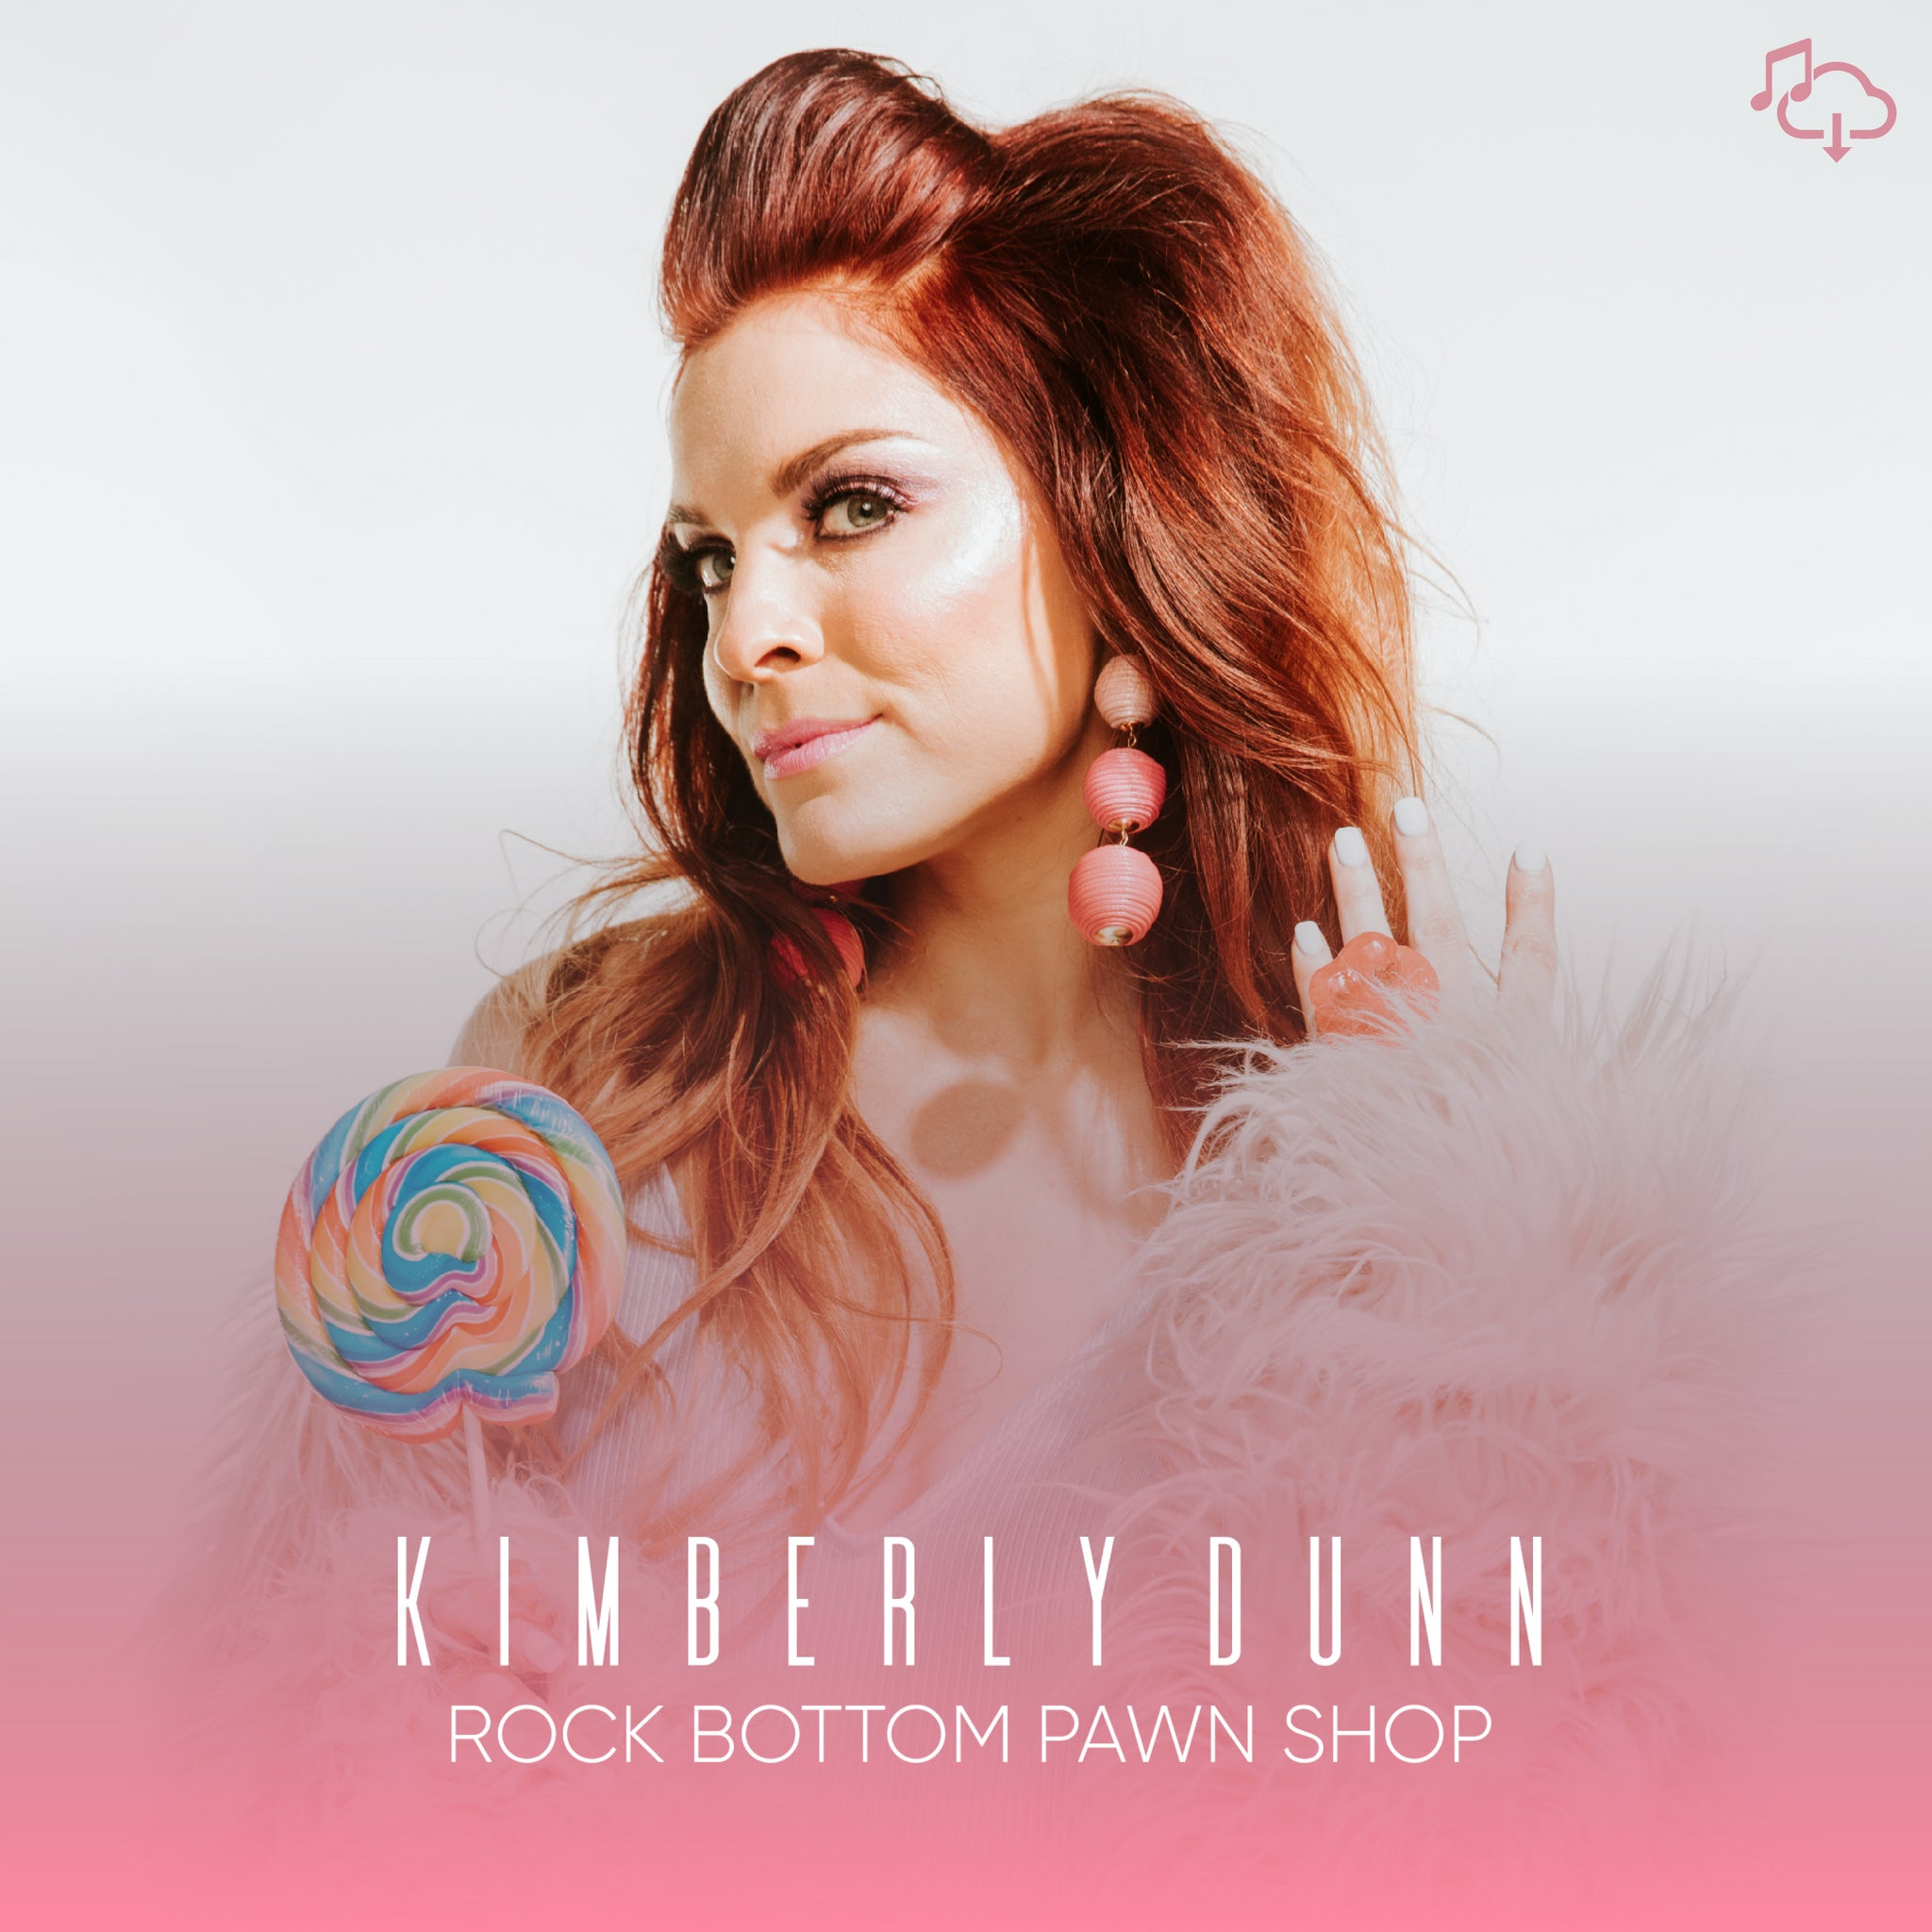 Rock Bottom Pawn Shop Digital Download